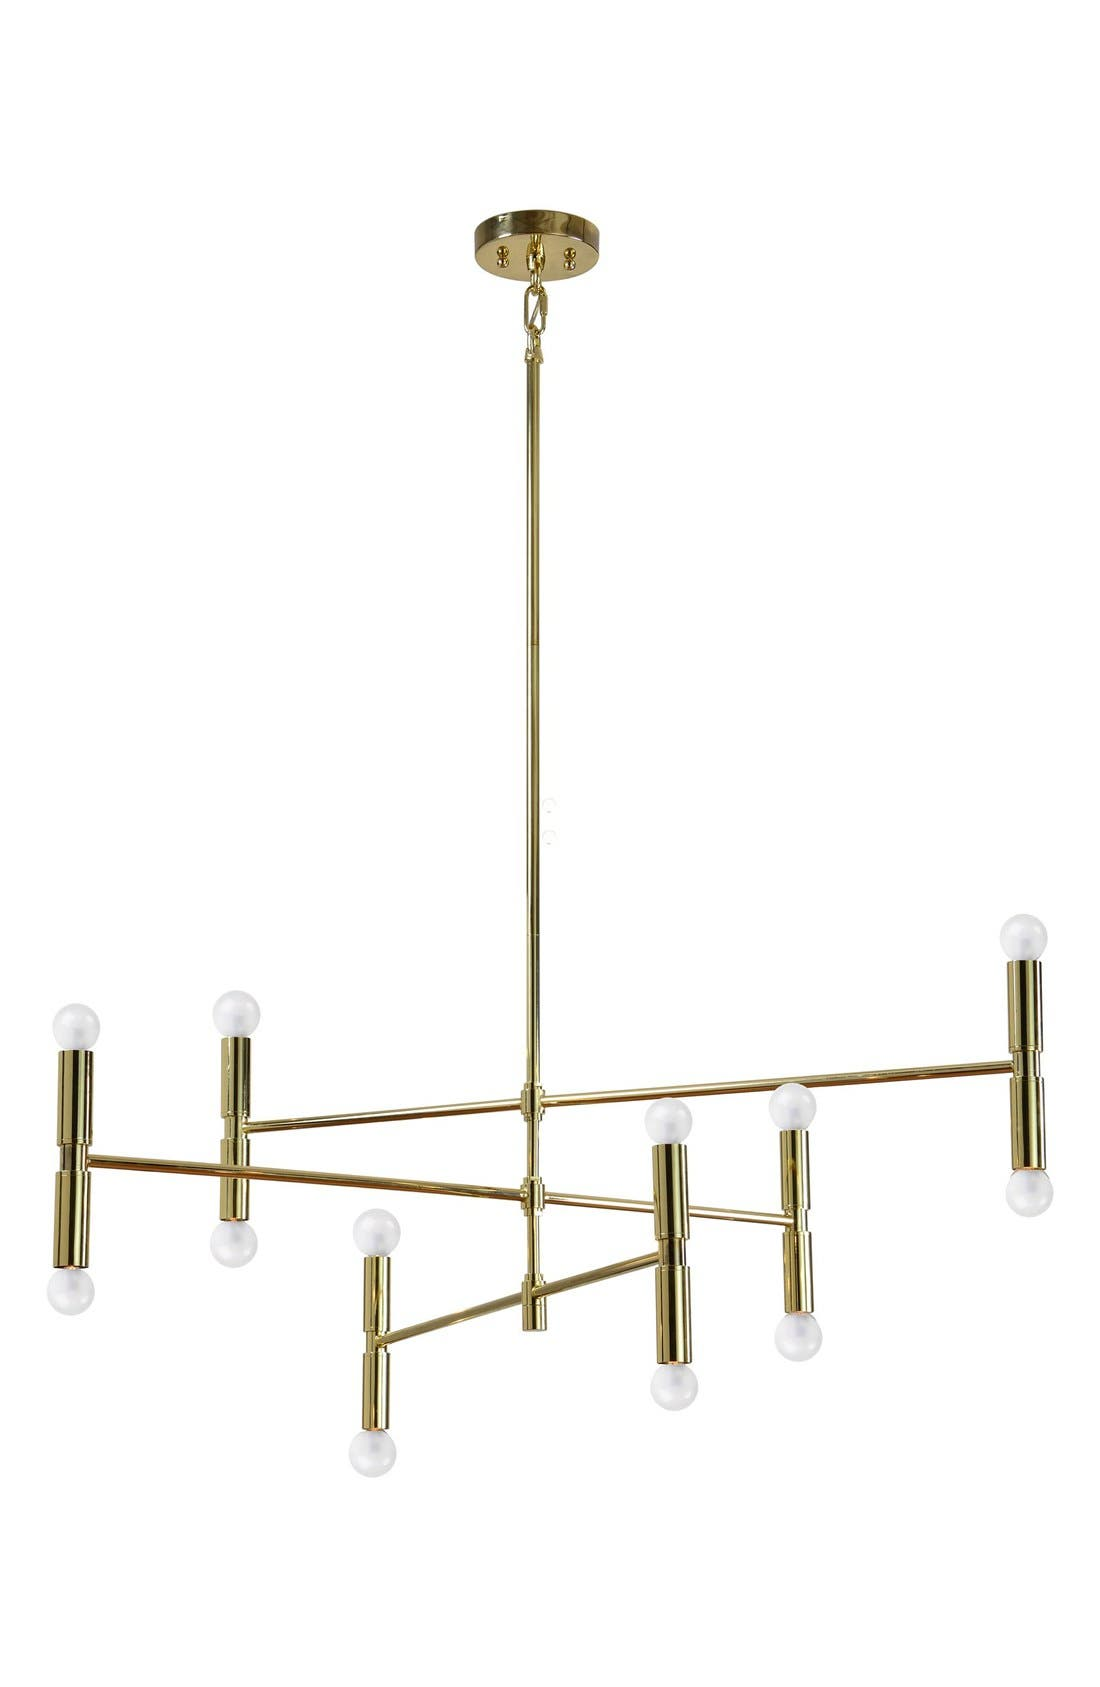 'Axis' Ceiling Light Fixture,                             Main thumbnail 1, color,                             GOLD